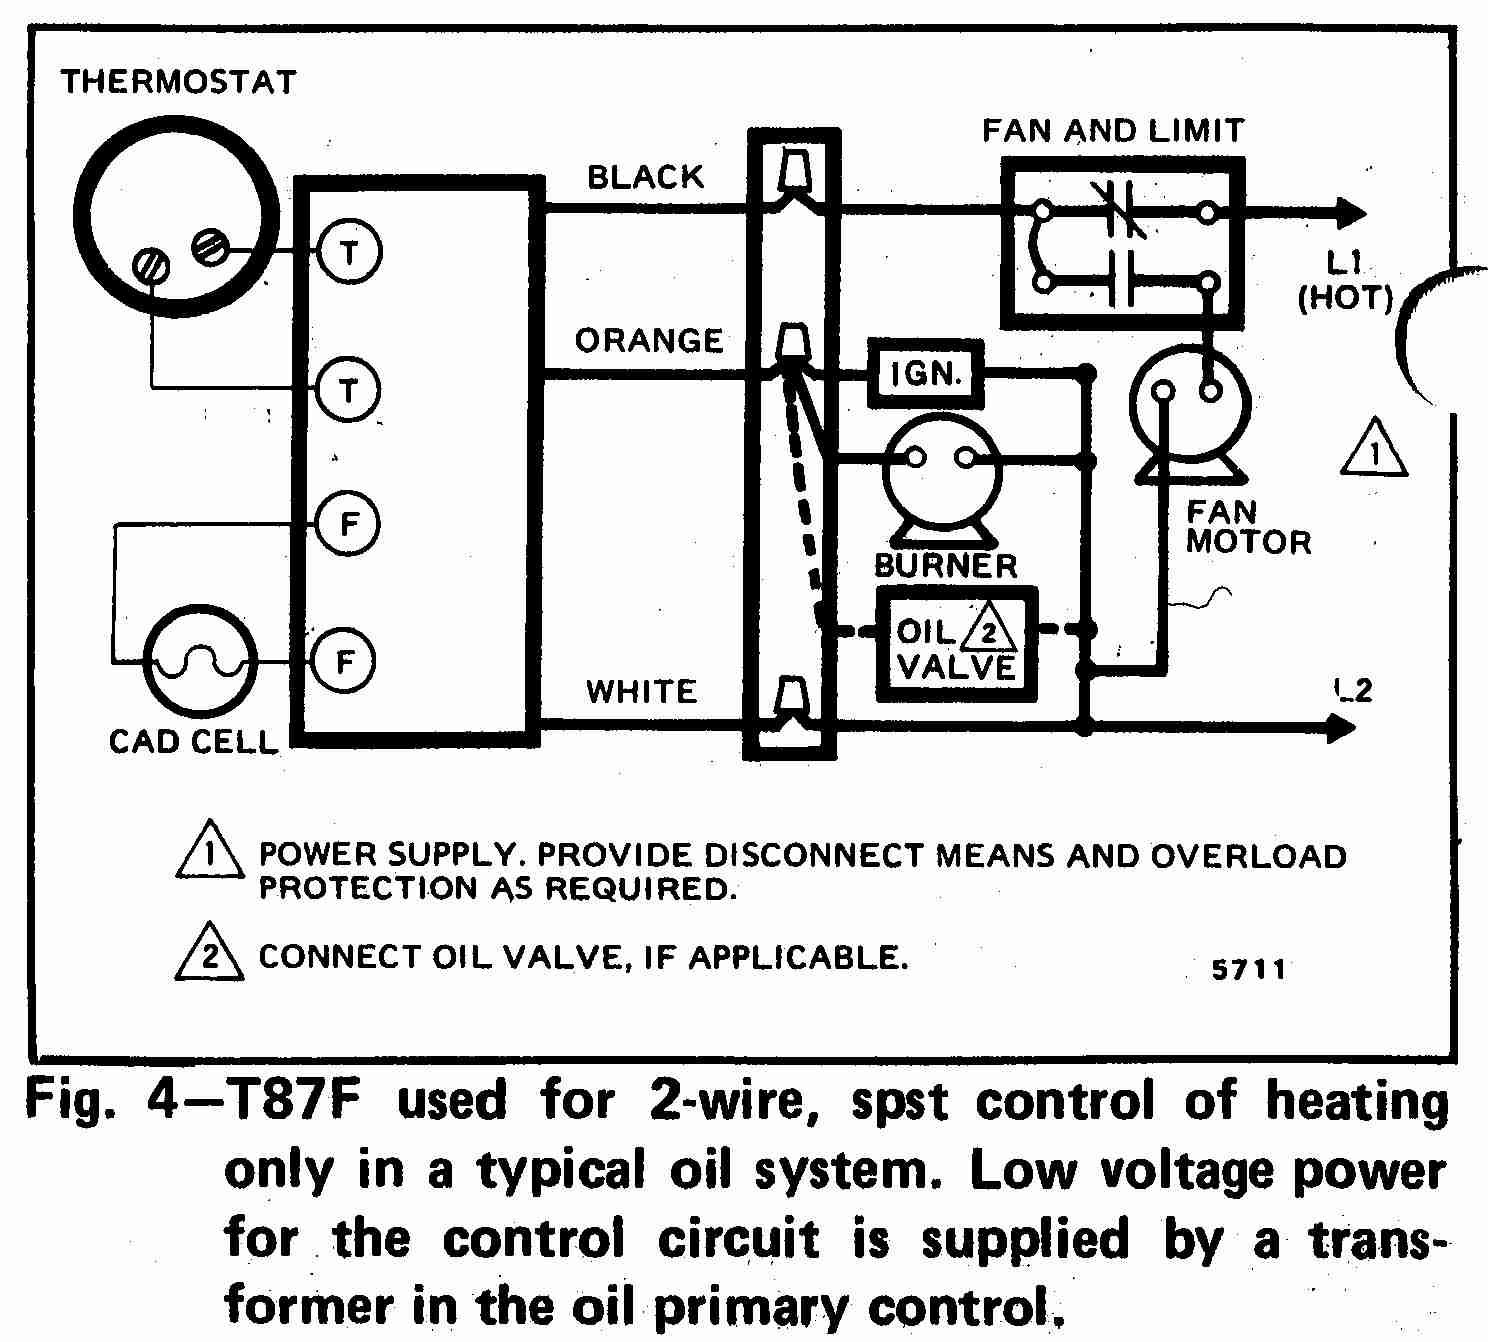 7 wire thermostat diagram coleman mach thermostat wiring diagram schematics and wiring thermostat digital 12v 7 wire for coleman h